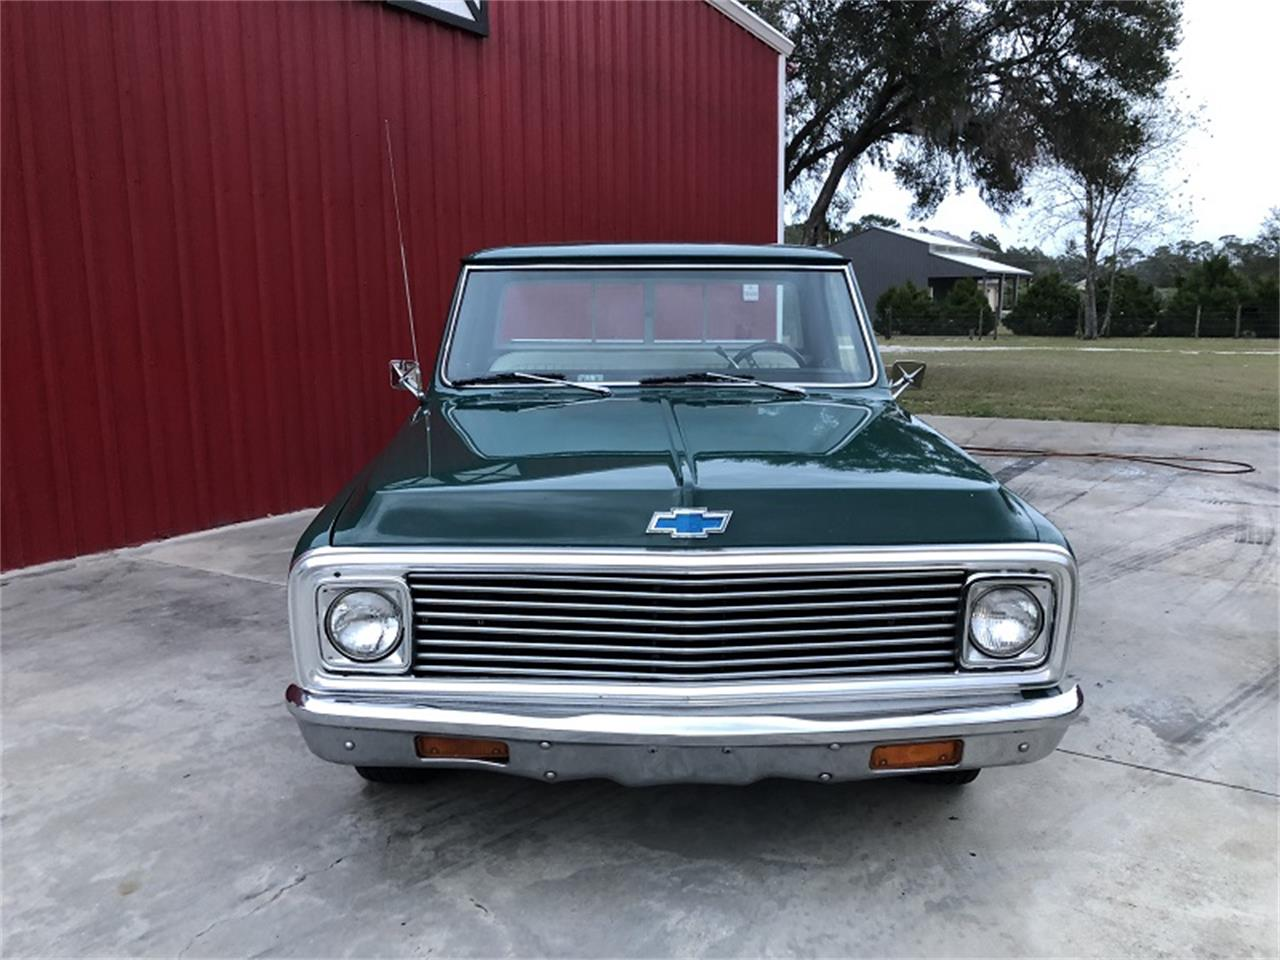 Large Picture of Classic 1972 Chevrolet Cheyenne - $15,500.00 - MR92